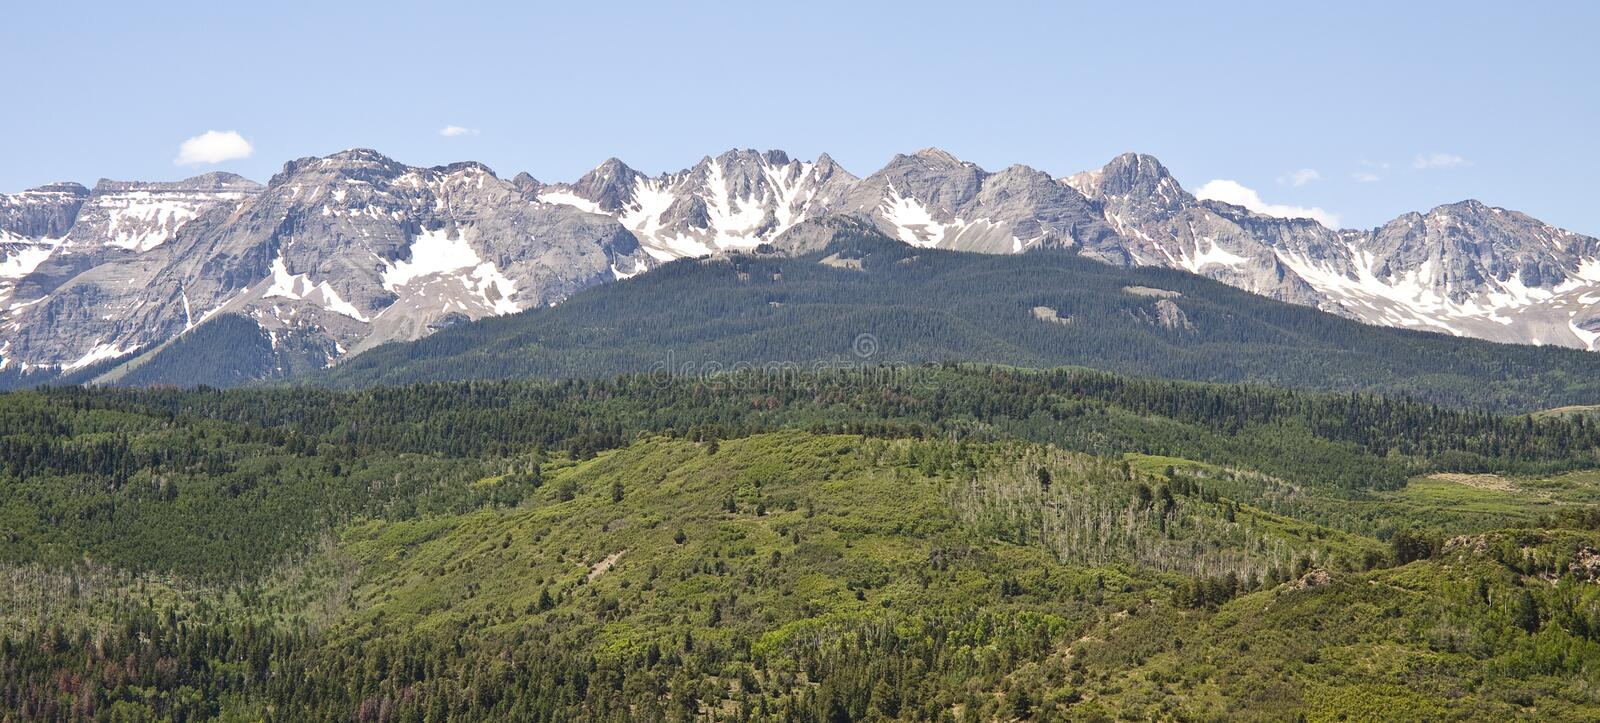 Download Wilderness Stock Photos - Image: 26144943